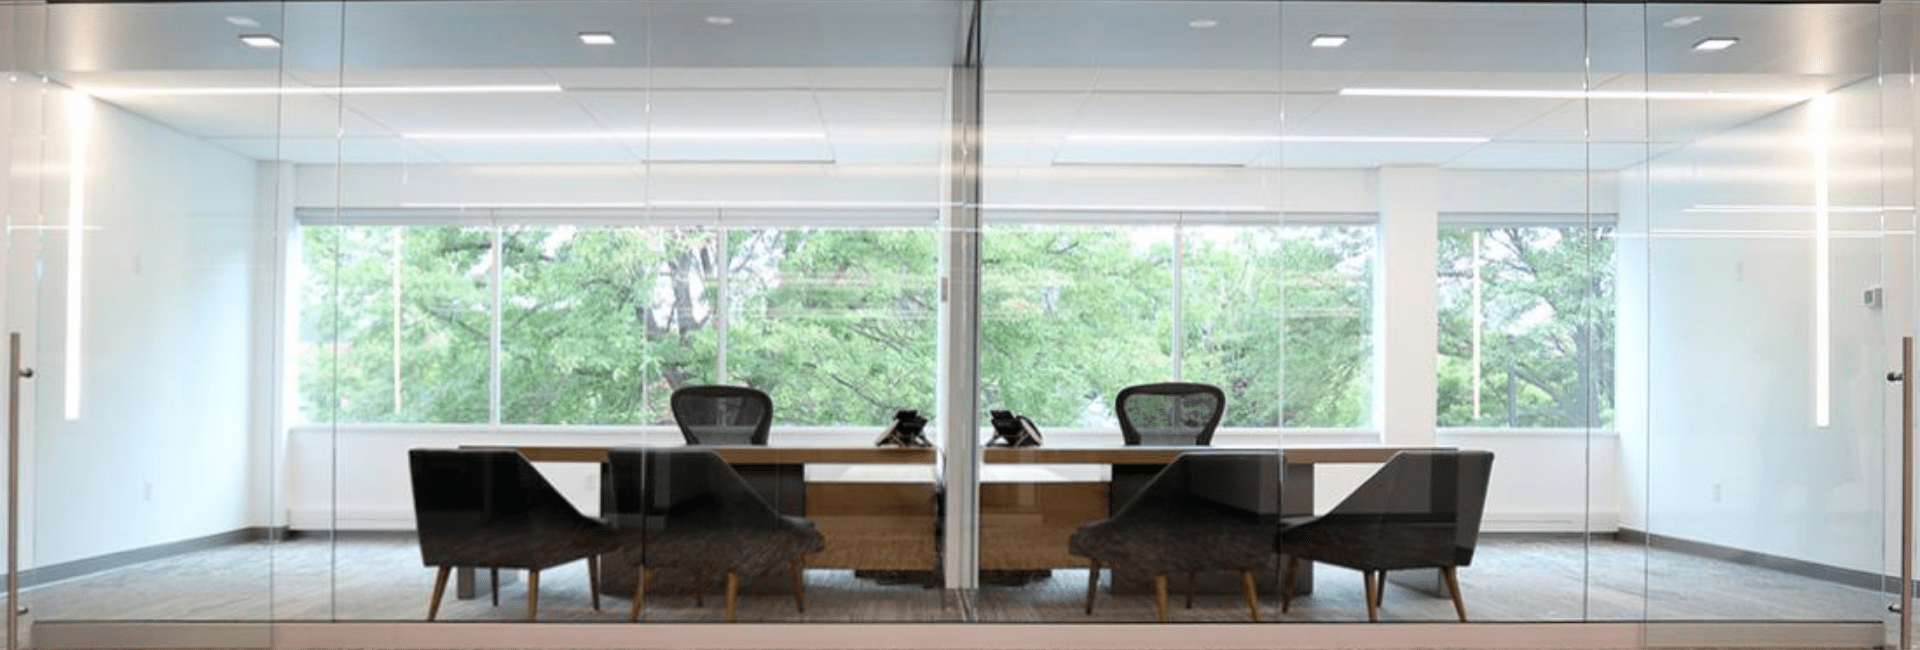 OLED Light and its Impact on Employee Productivity and Well-being